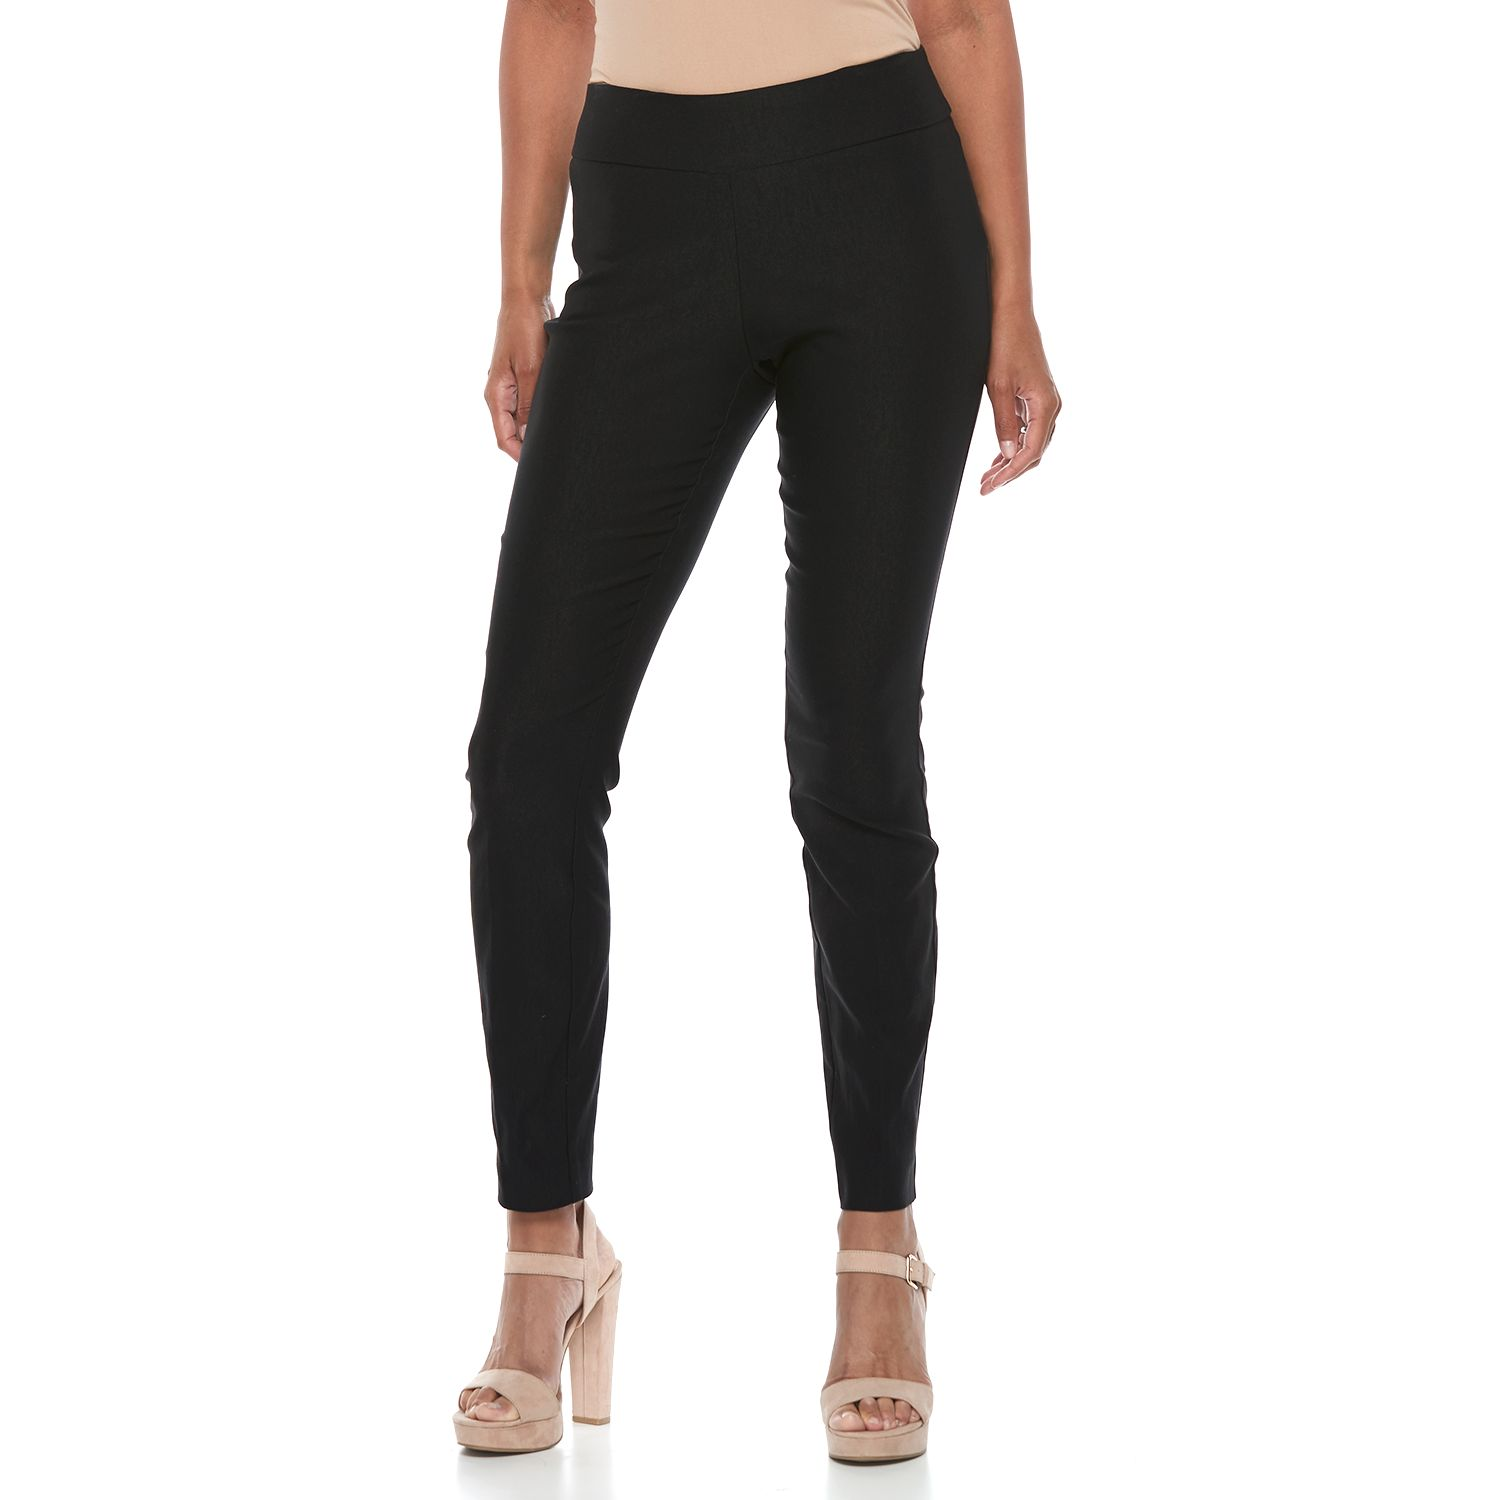 Skinny Dress Pants Women I7nWrb5N